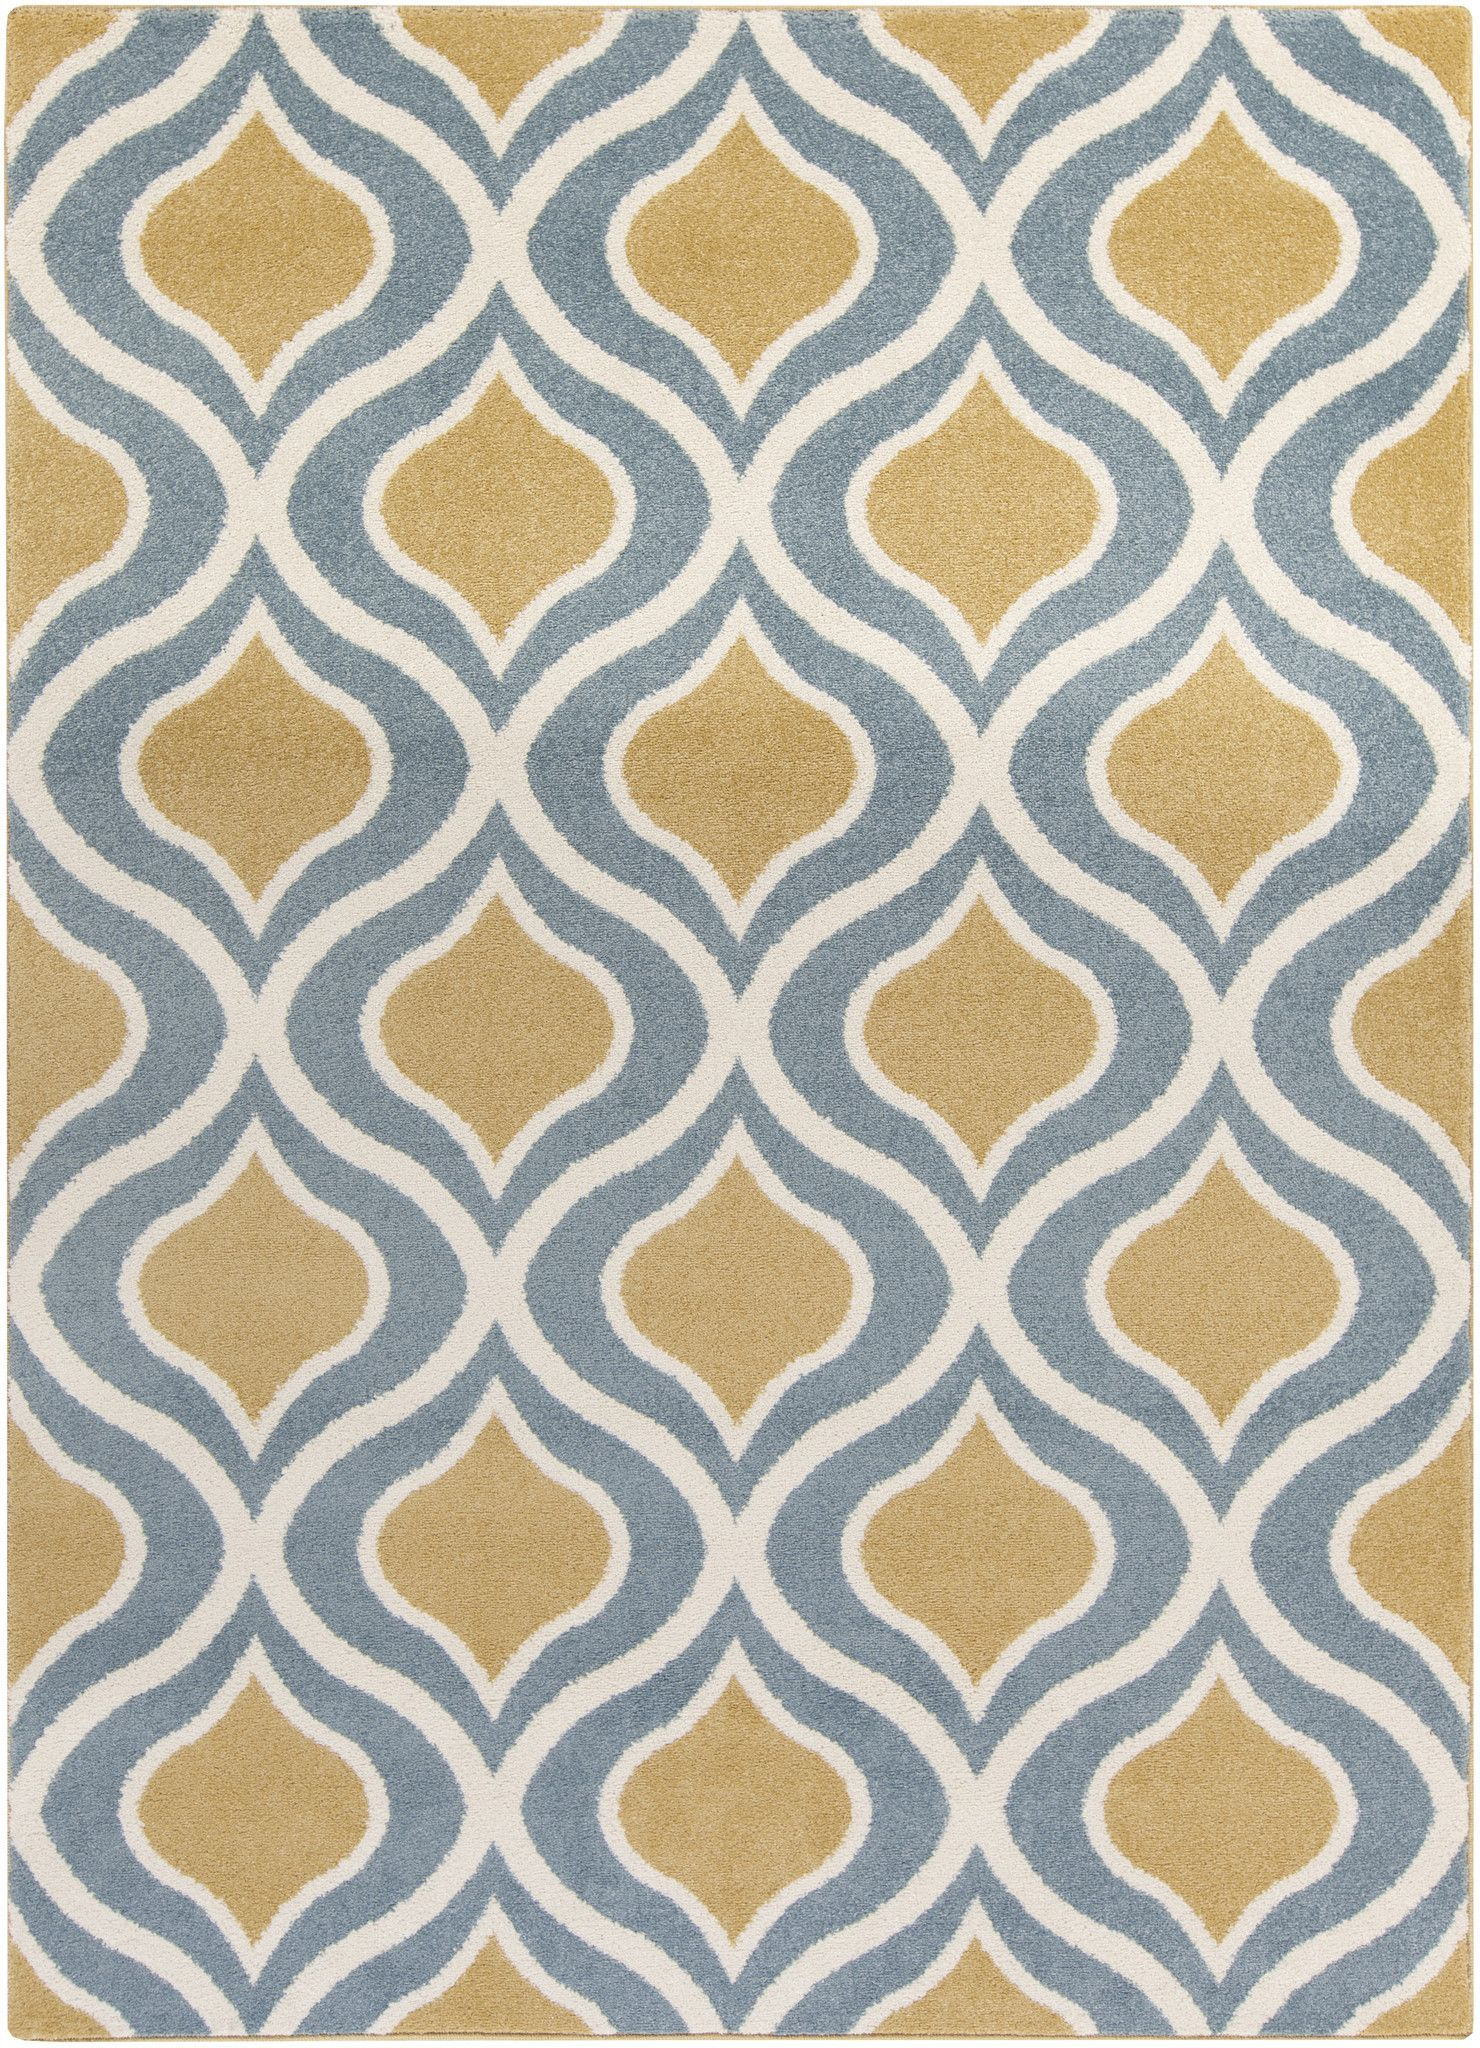 Surya Hrz1067 Horizon Yellow Blue Rectangle Area Rug